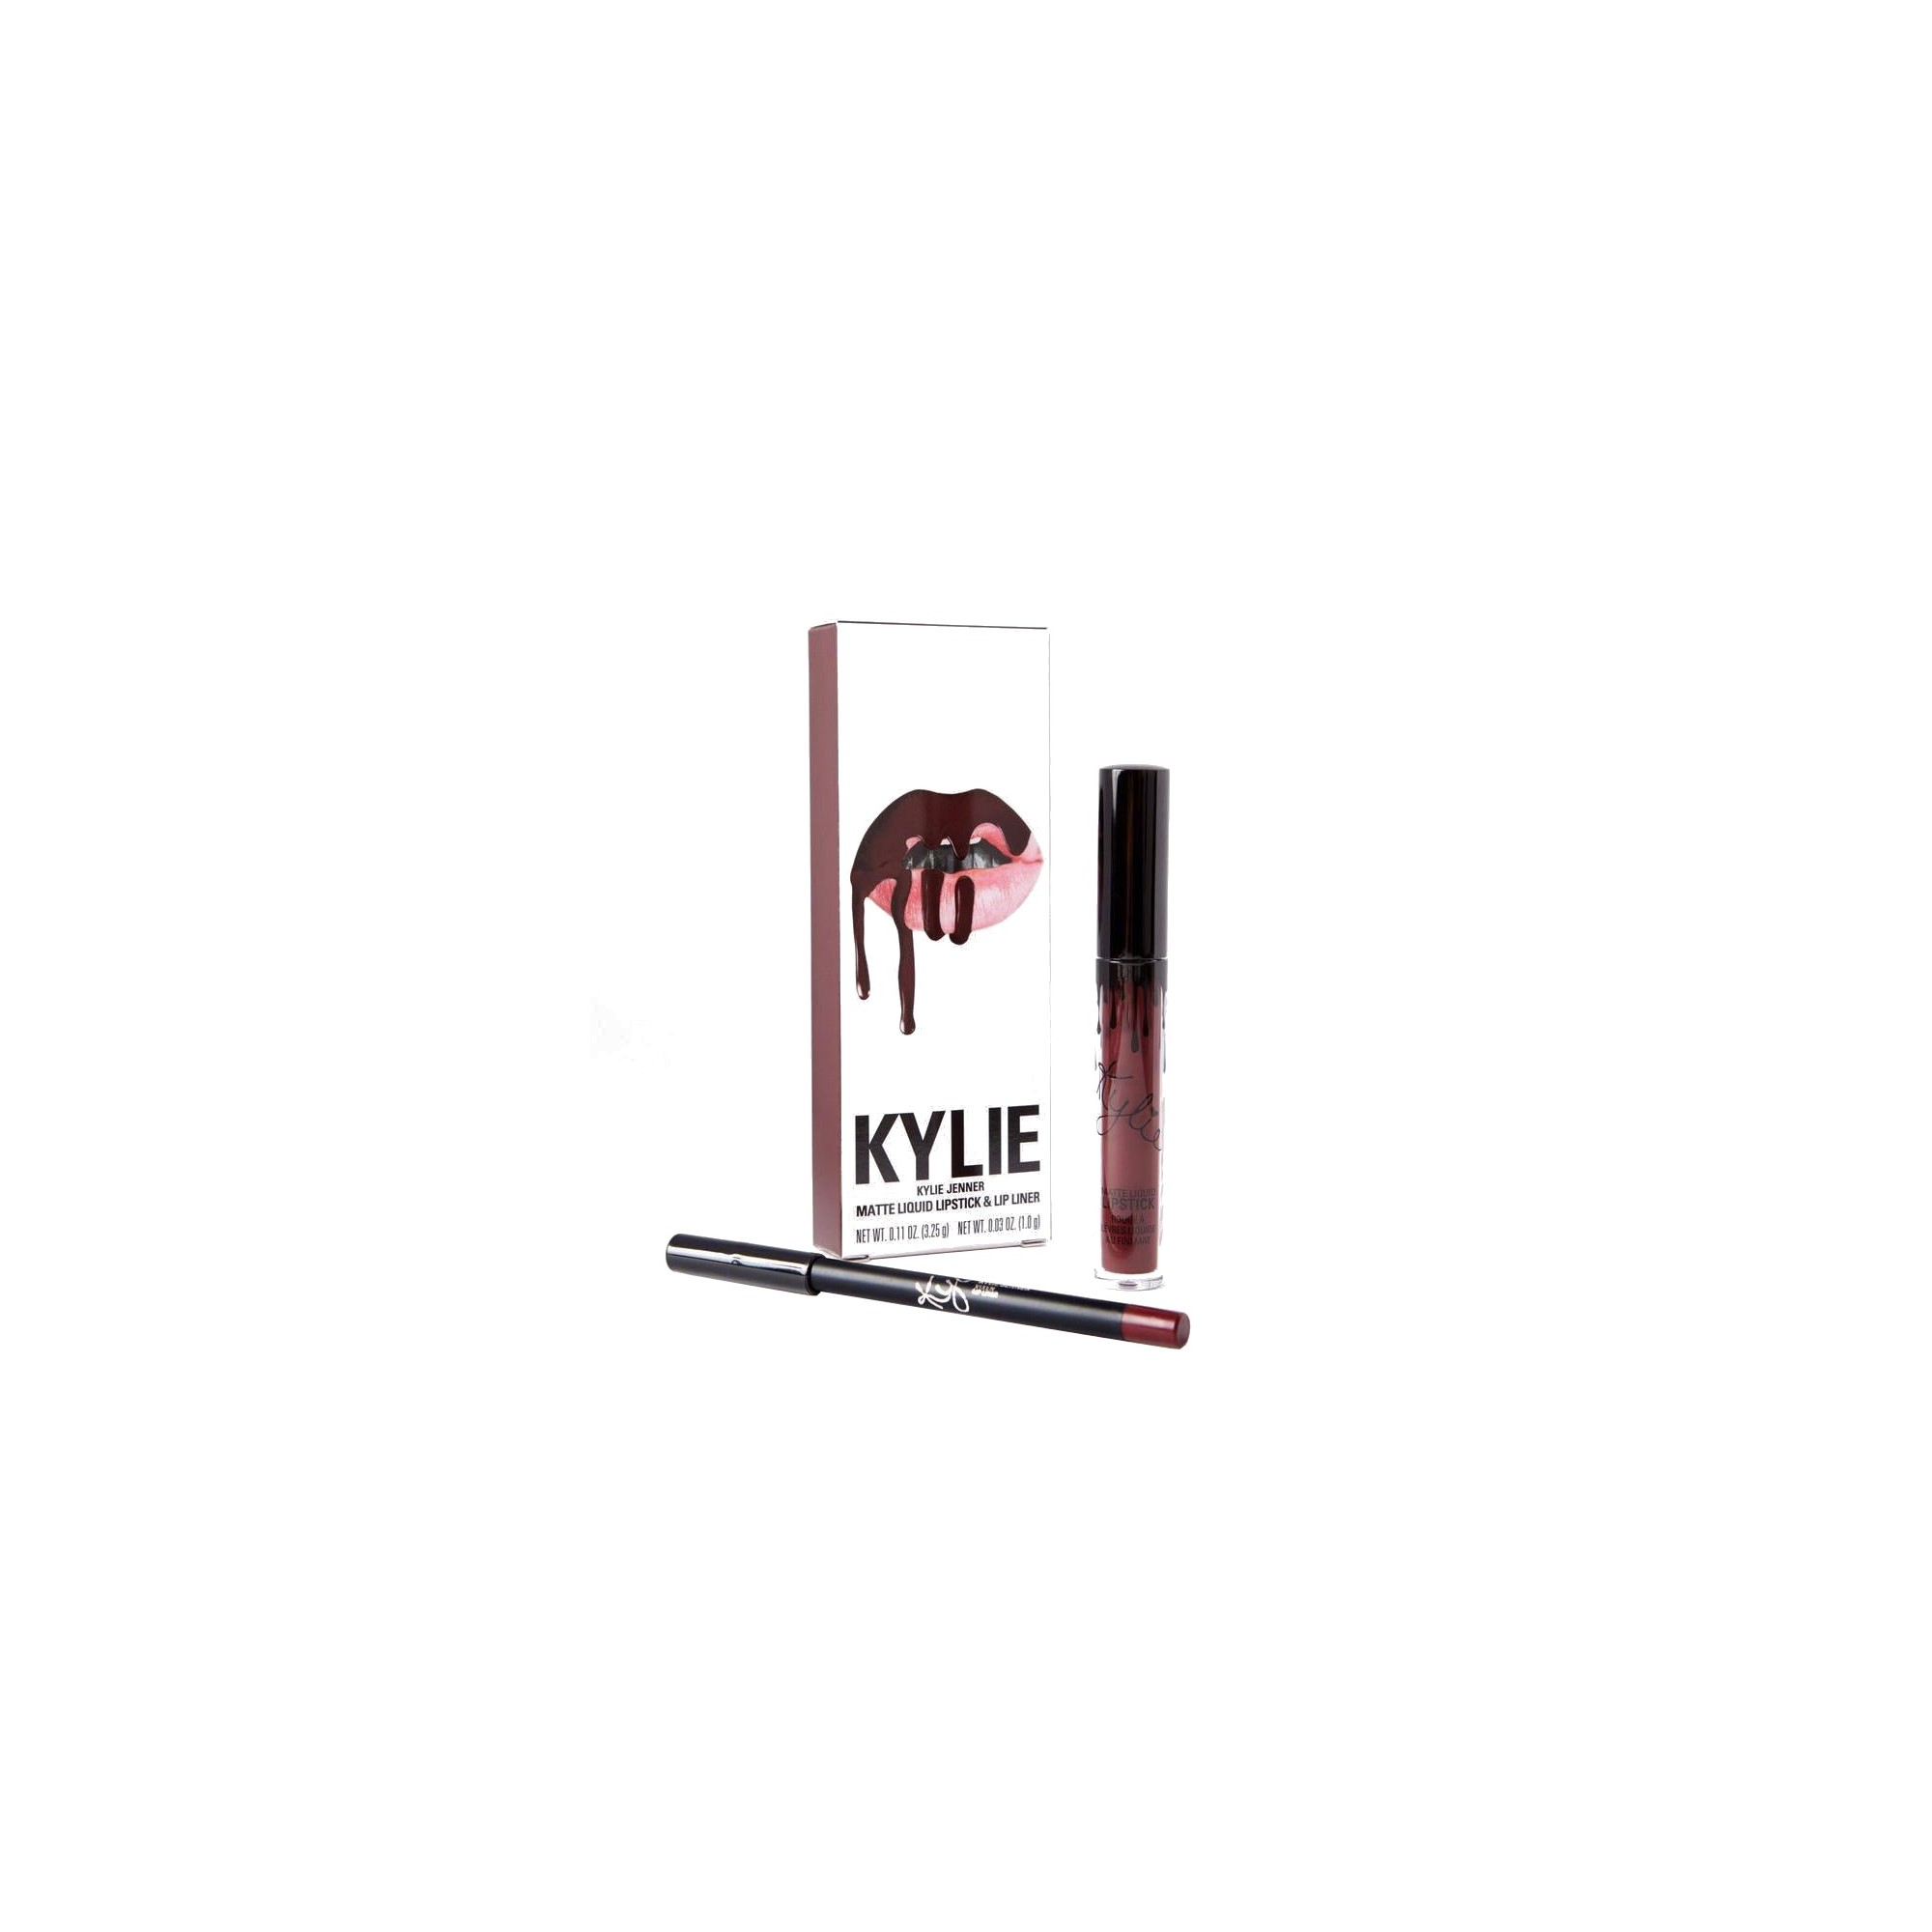 Kylie Cosmetics Vixen Lip Kit